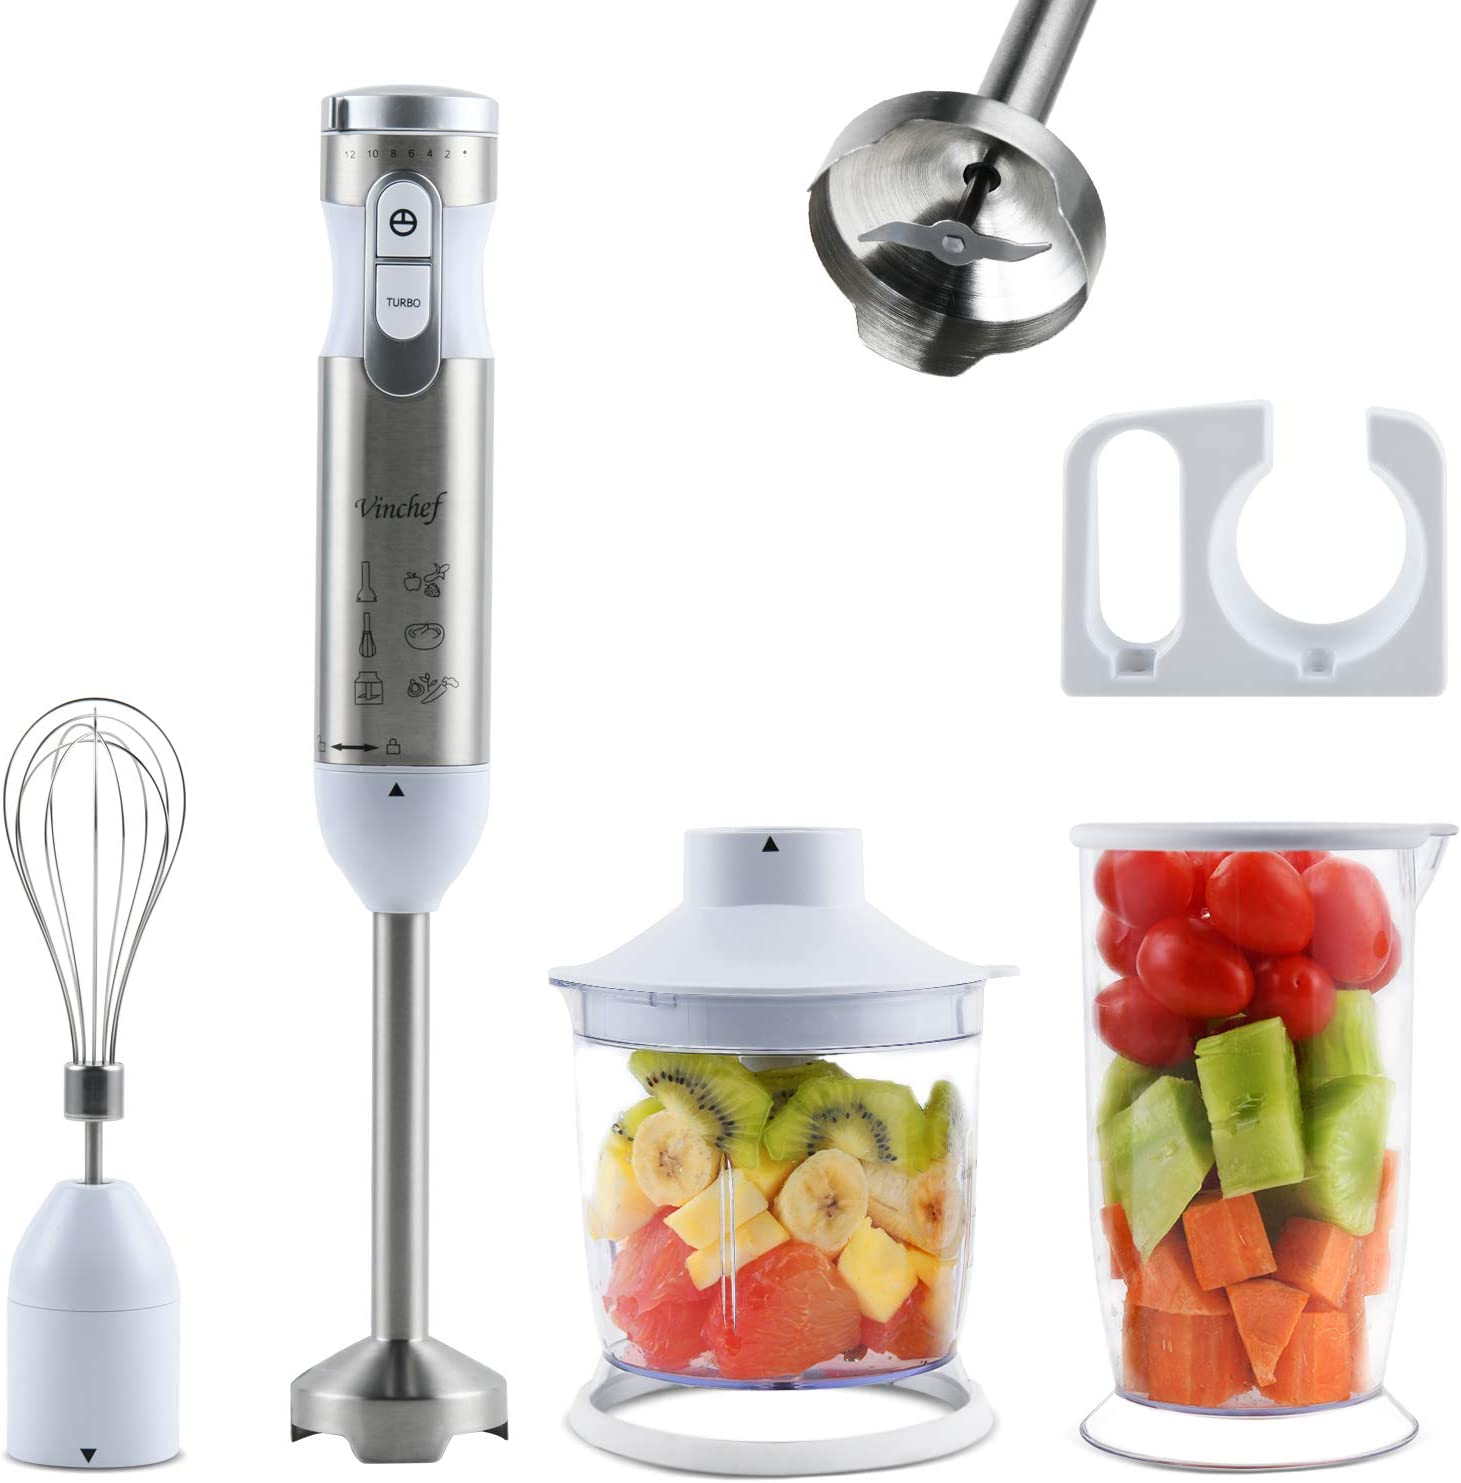 Vinchef 300w 5 in 1 Immersion Hand Blender, Multi-Speed Stainless Steel Handheld Stick Blender with 700ml Beaker, Whisk, Chopper/Grinder Bowl and Wall Rack, Puree Baby Food, BPA-Free (White)